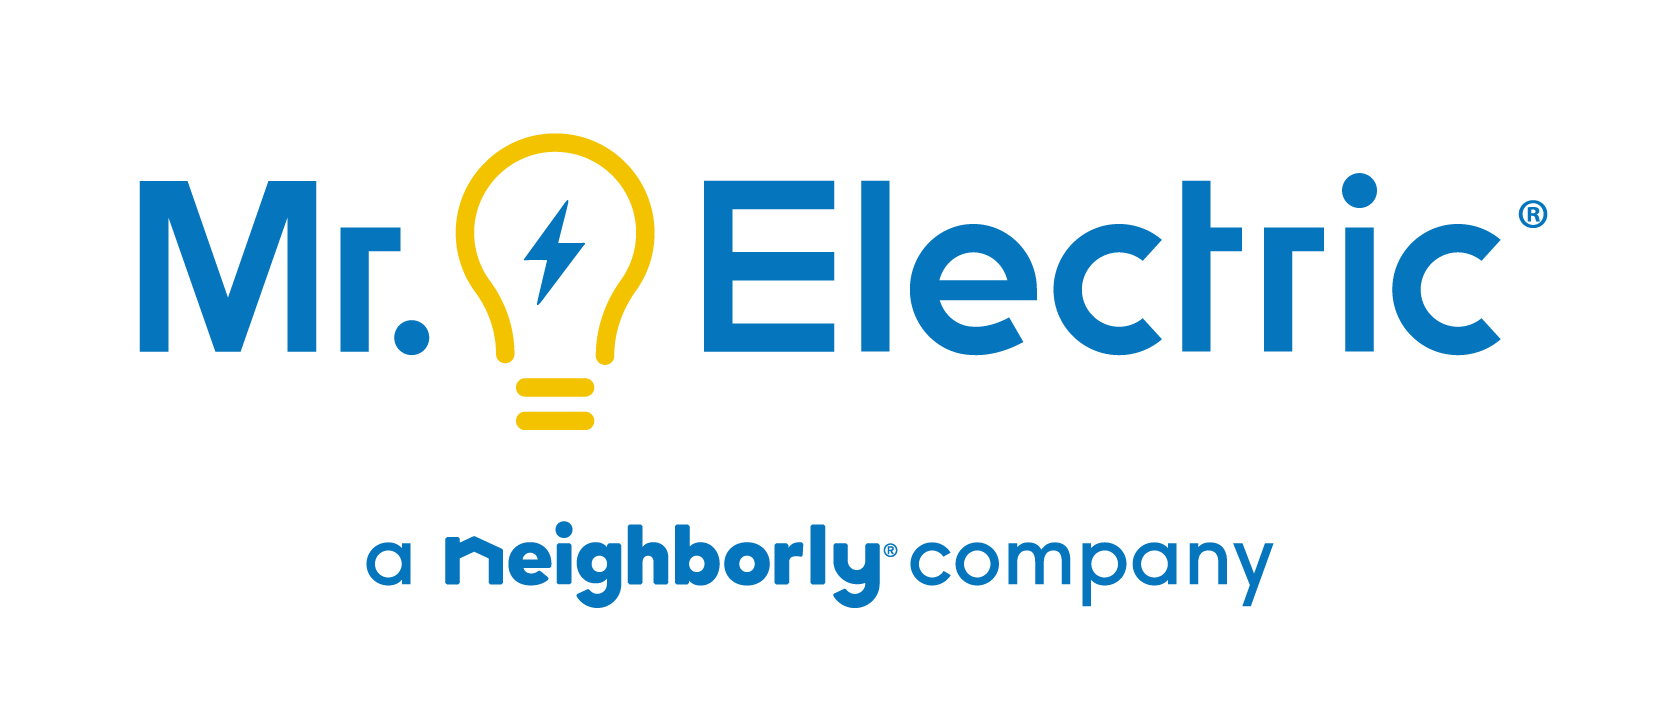 Mr. Electric of Boca Raton